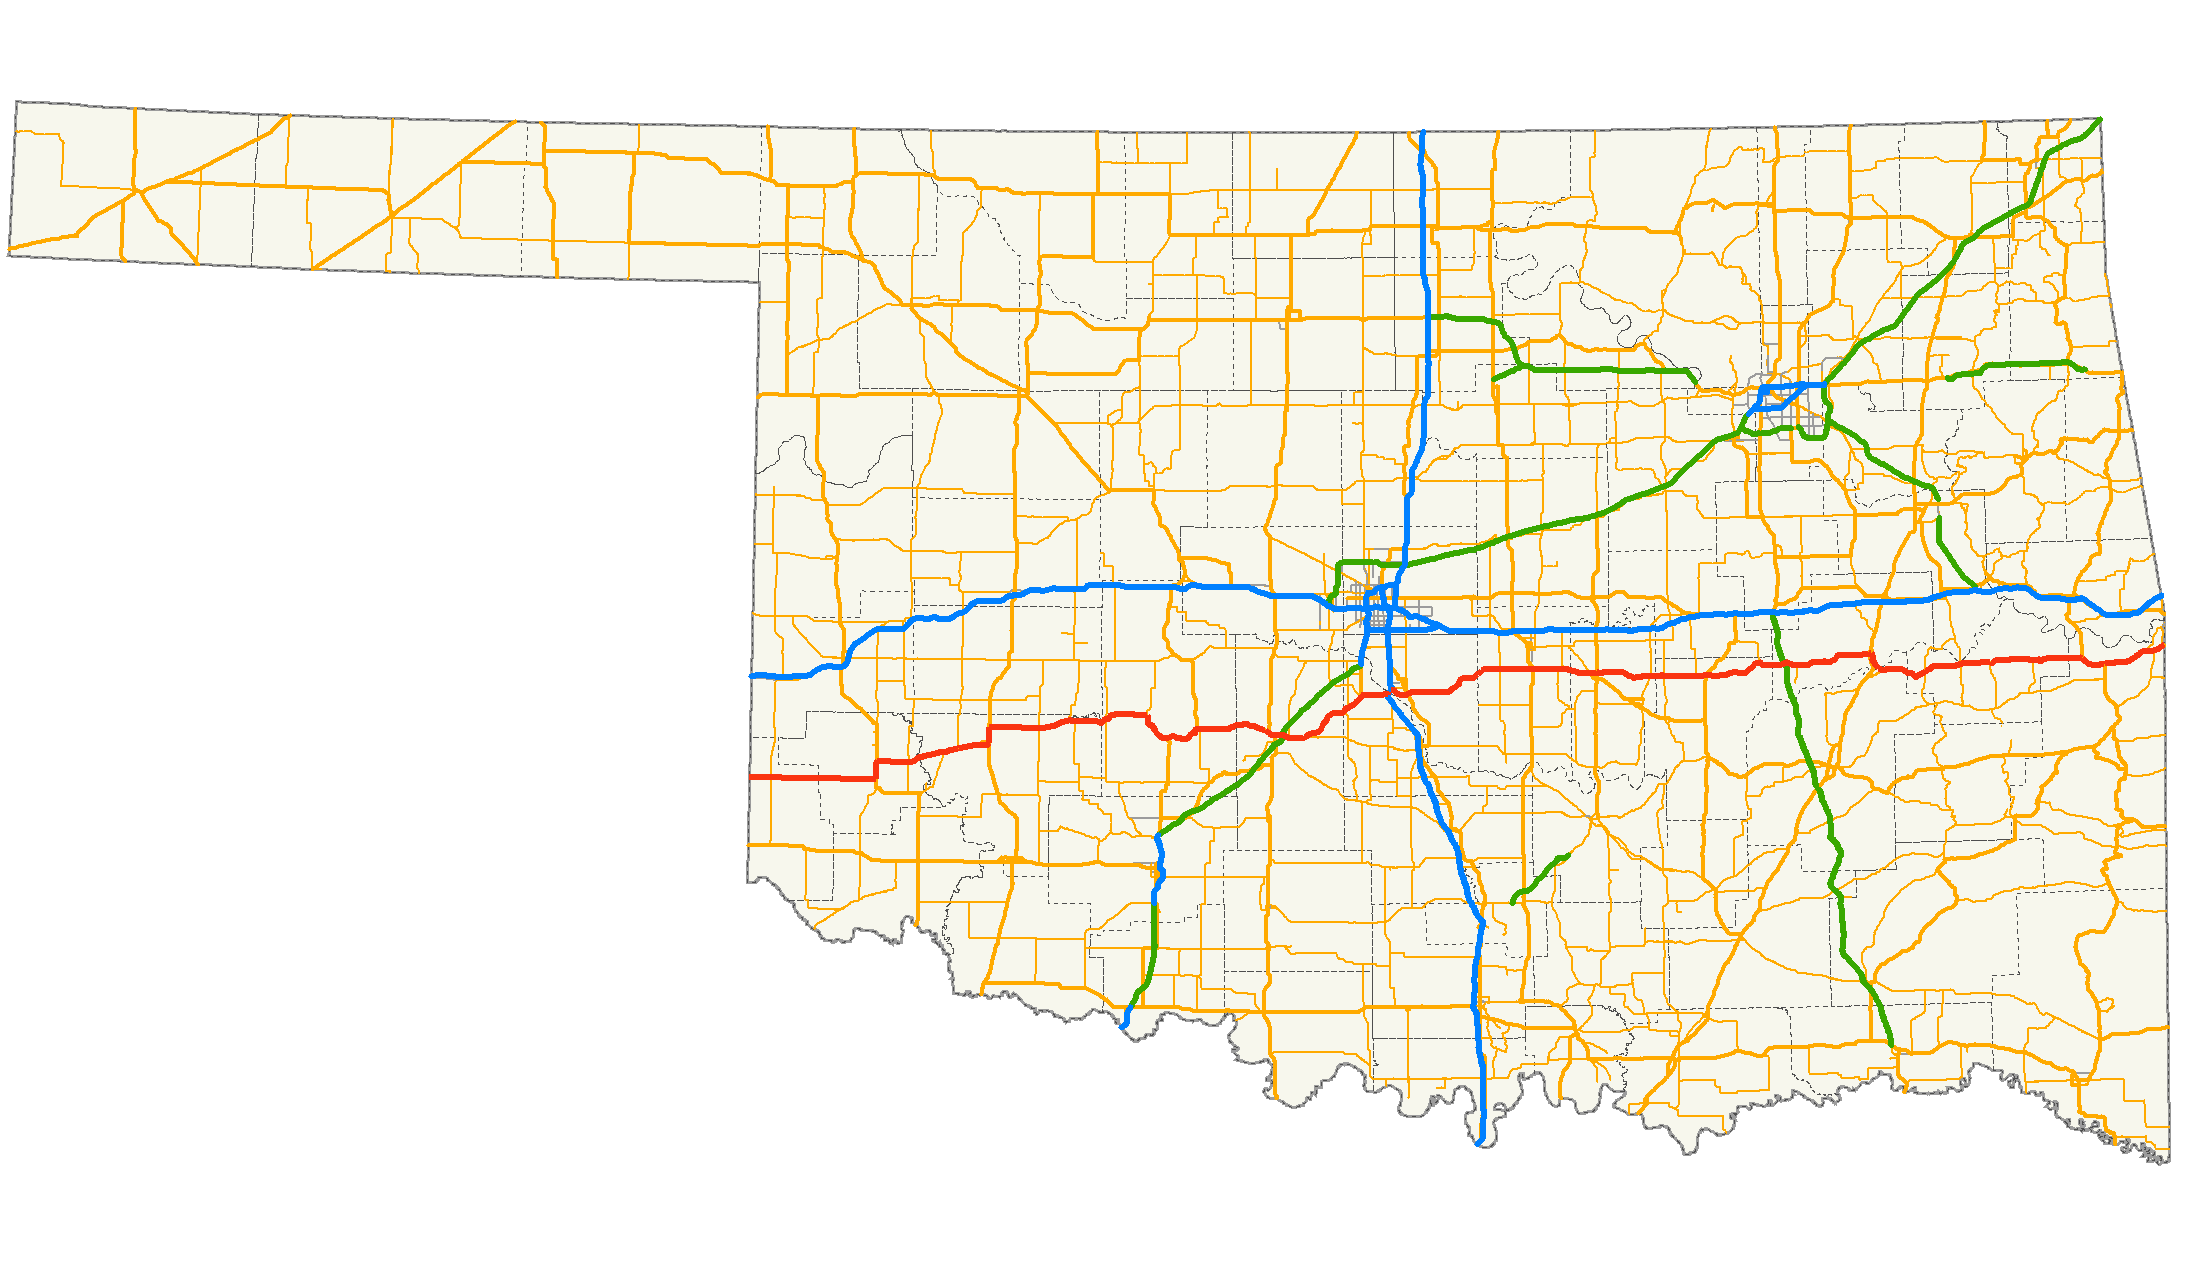 FileOklahoma State Highway Mappng Wikimedia Commons - Oklahoma highways map